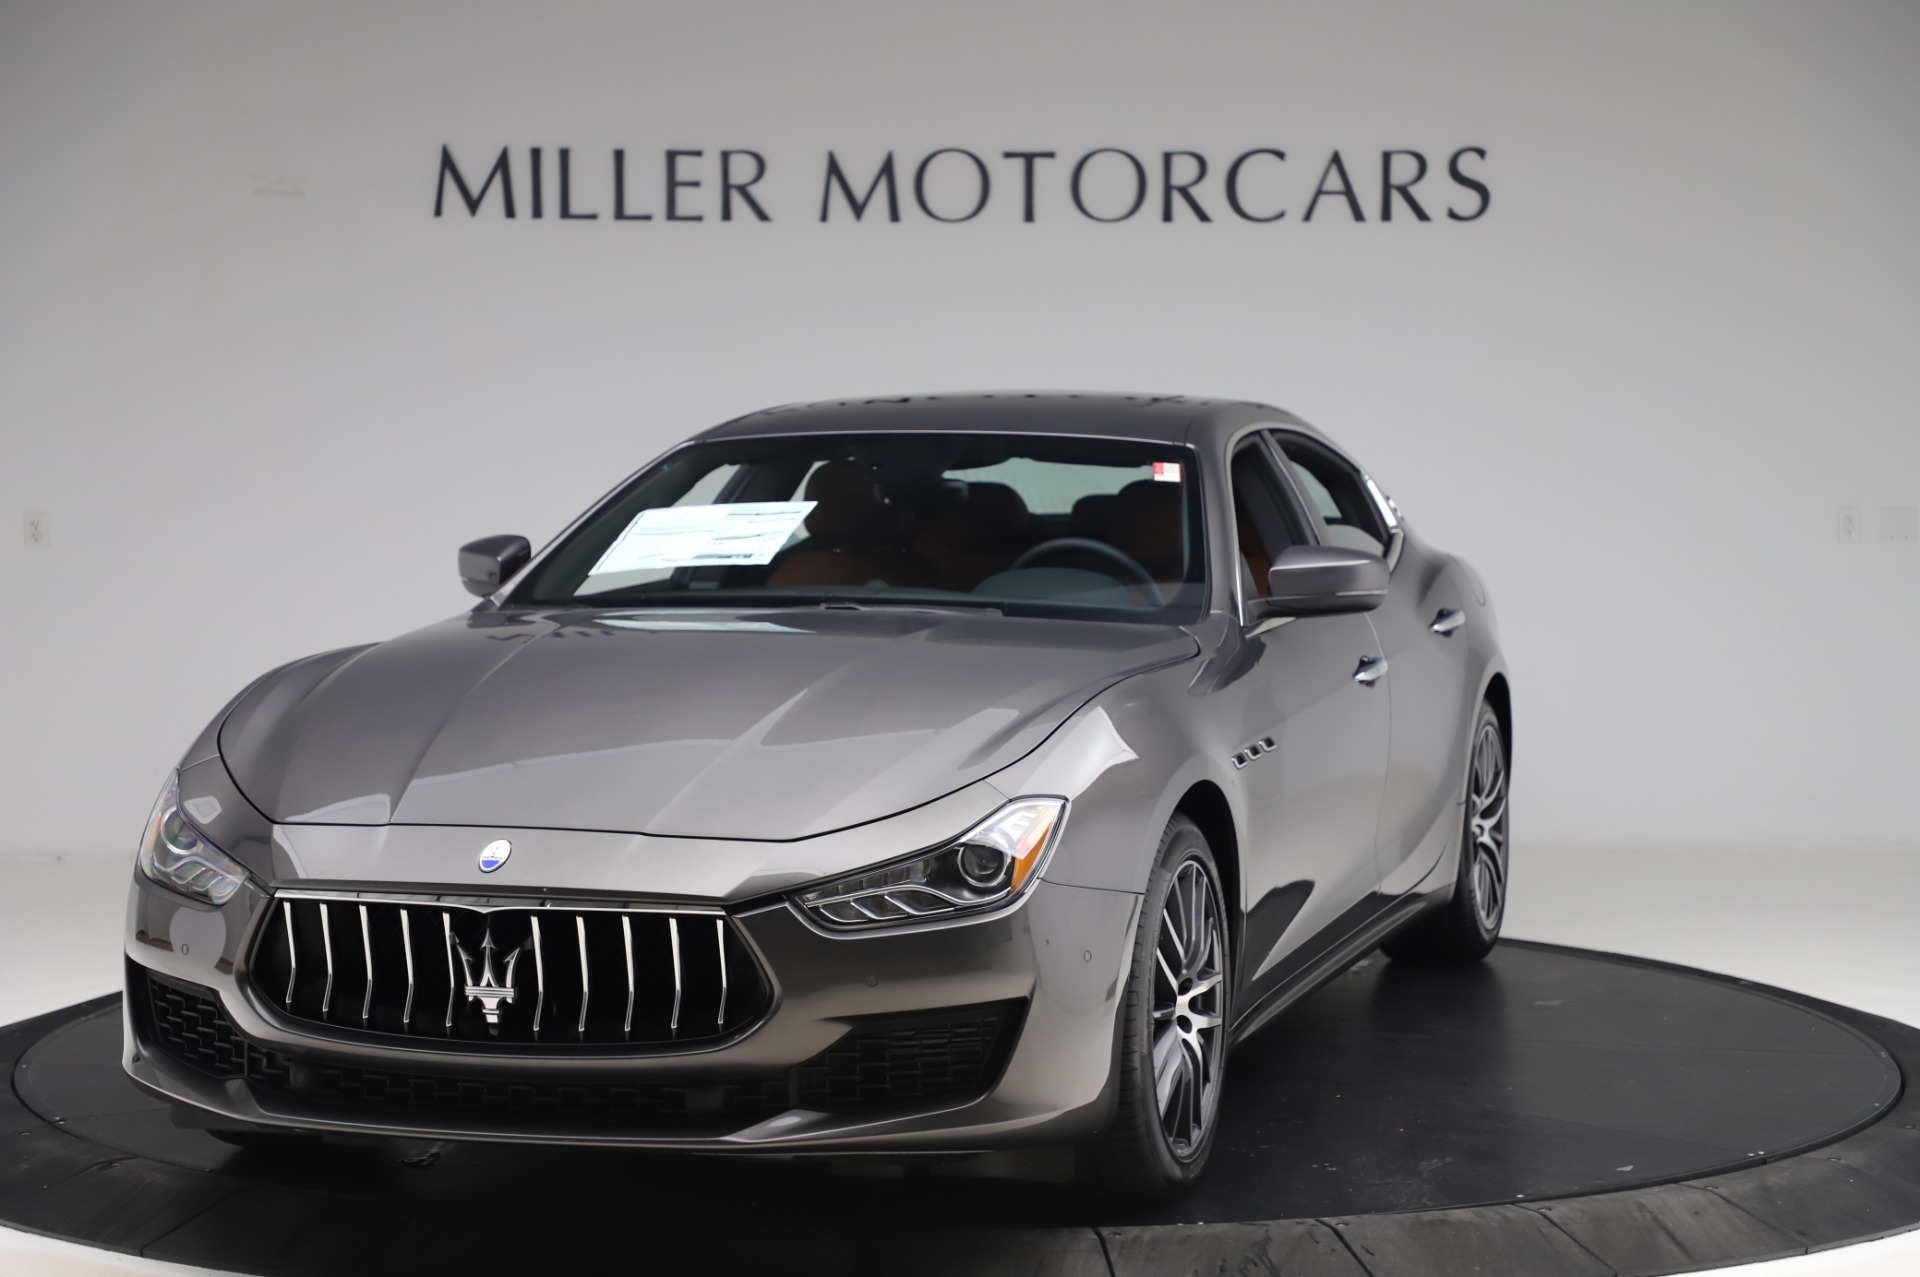 New 2020 Maserati Ghibli S Q4 for sale $82,385 at Maserati of Westport in Westport CT 06880 1